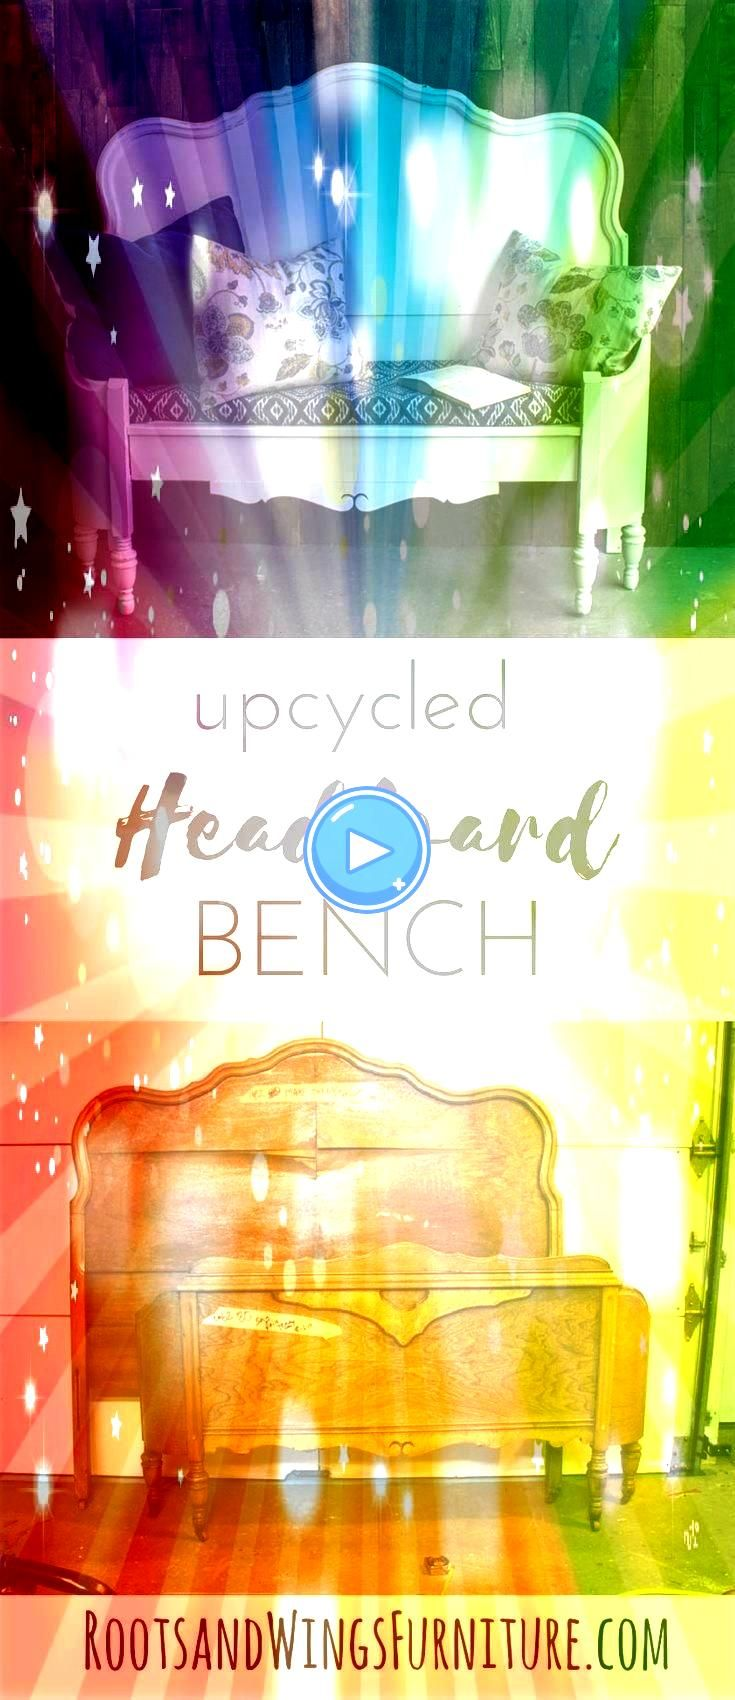 Bench  Roots Learn how to make a headboard bench Repurposing an old headboard View the tutorial hereLearn how to make a headboard bench Repurposing an old headboard View...